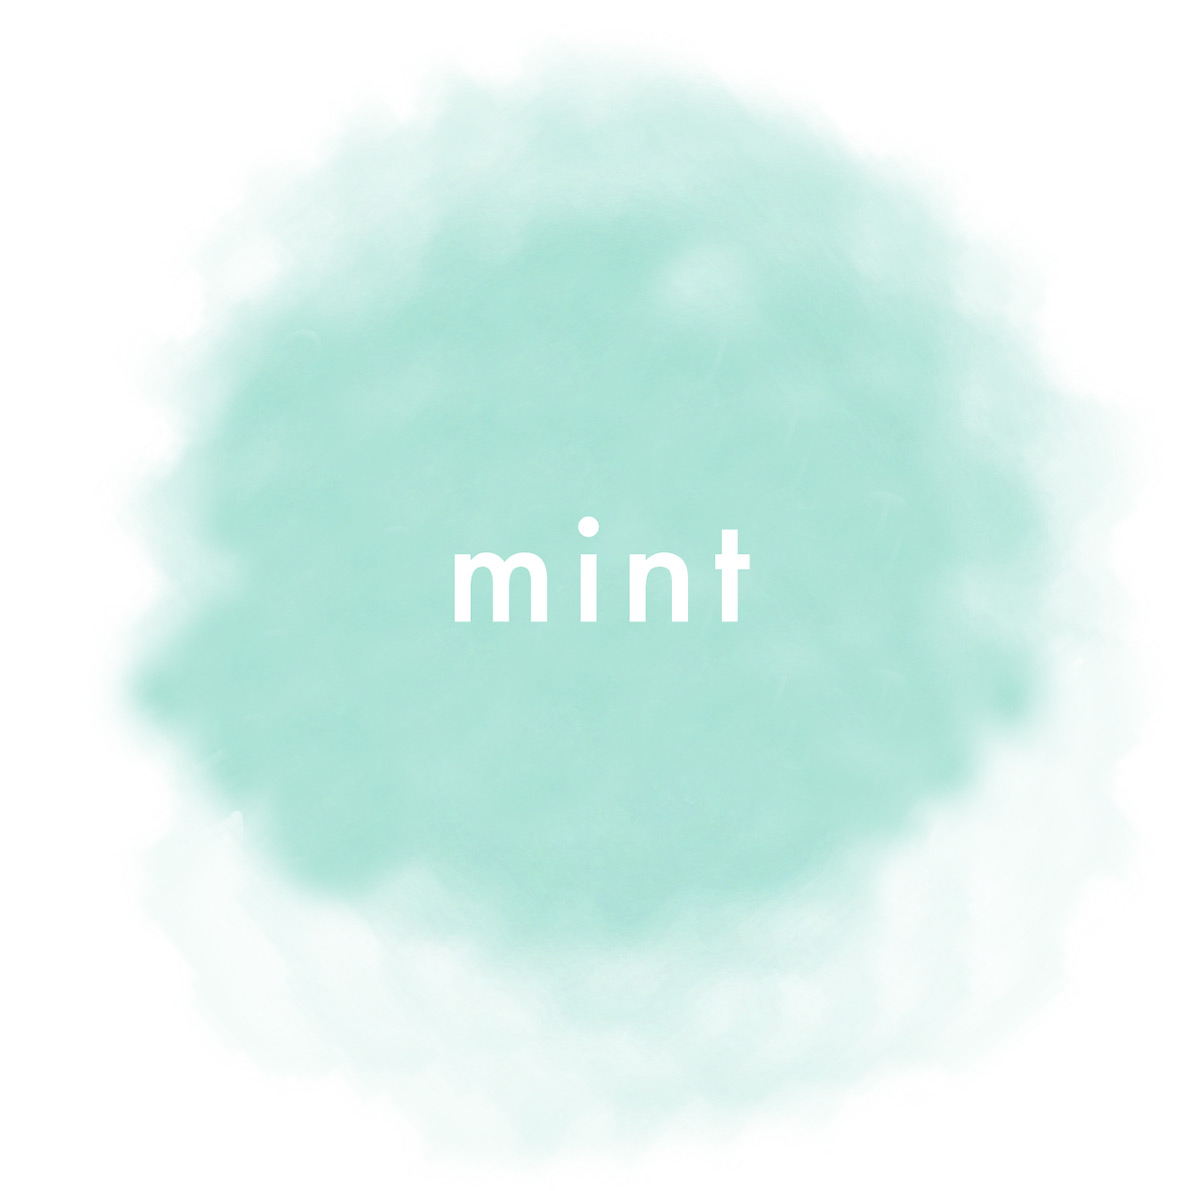 What inspires you? The color mint